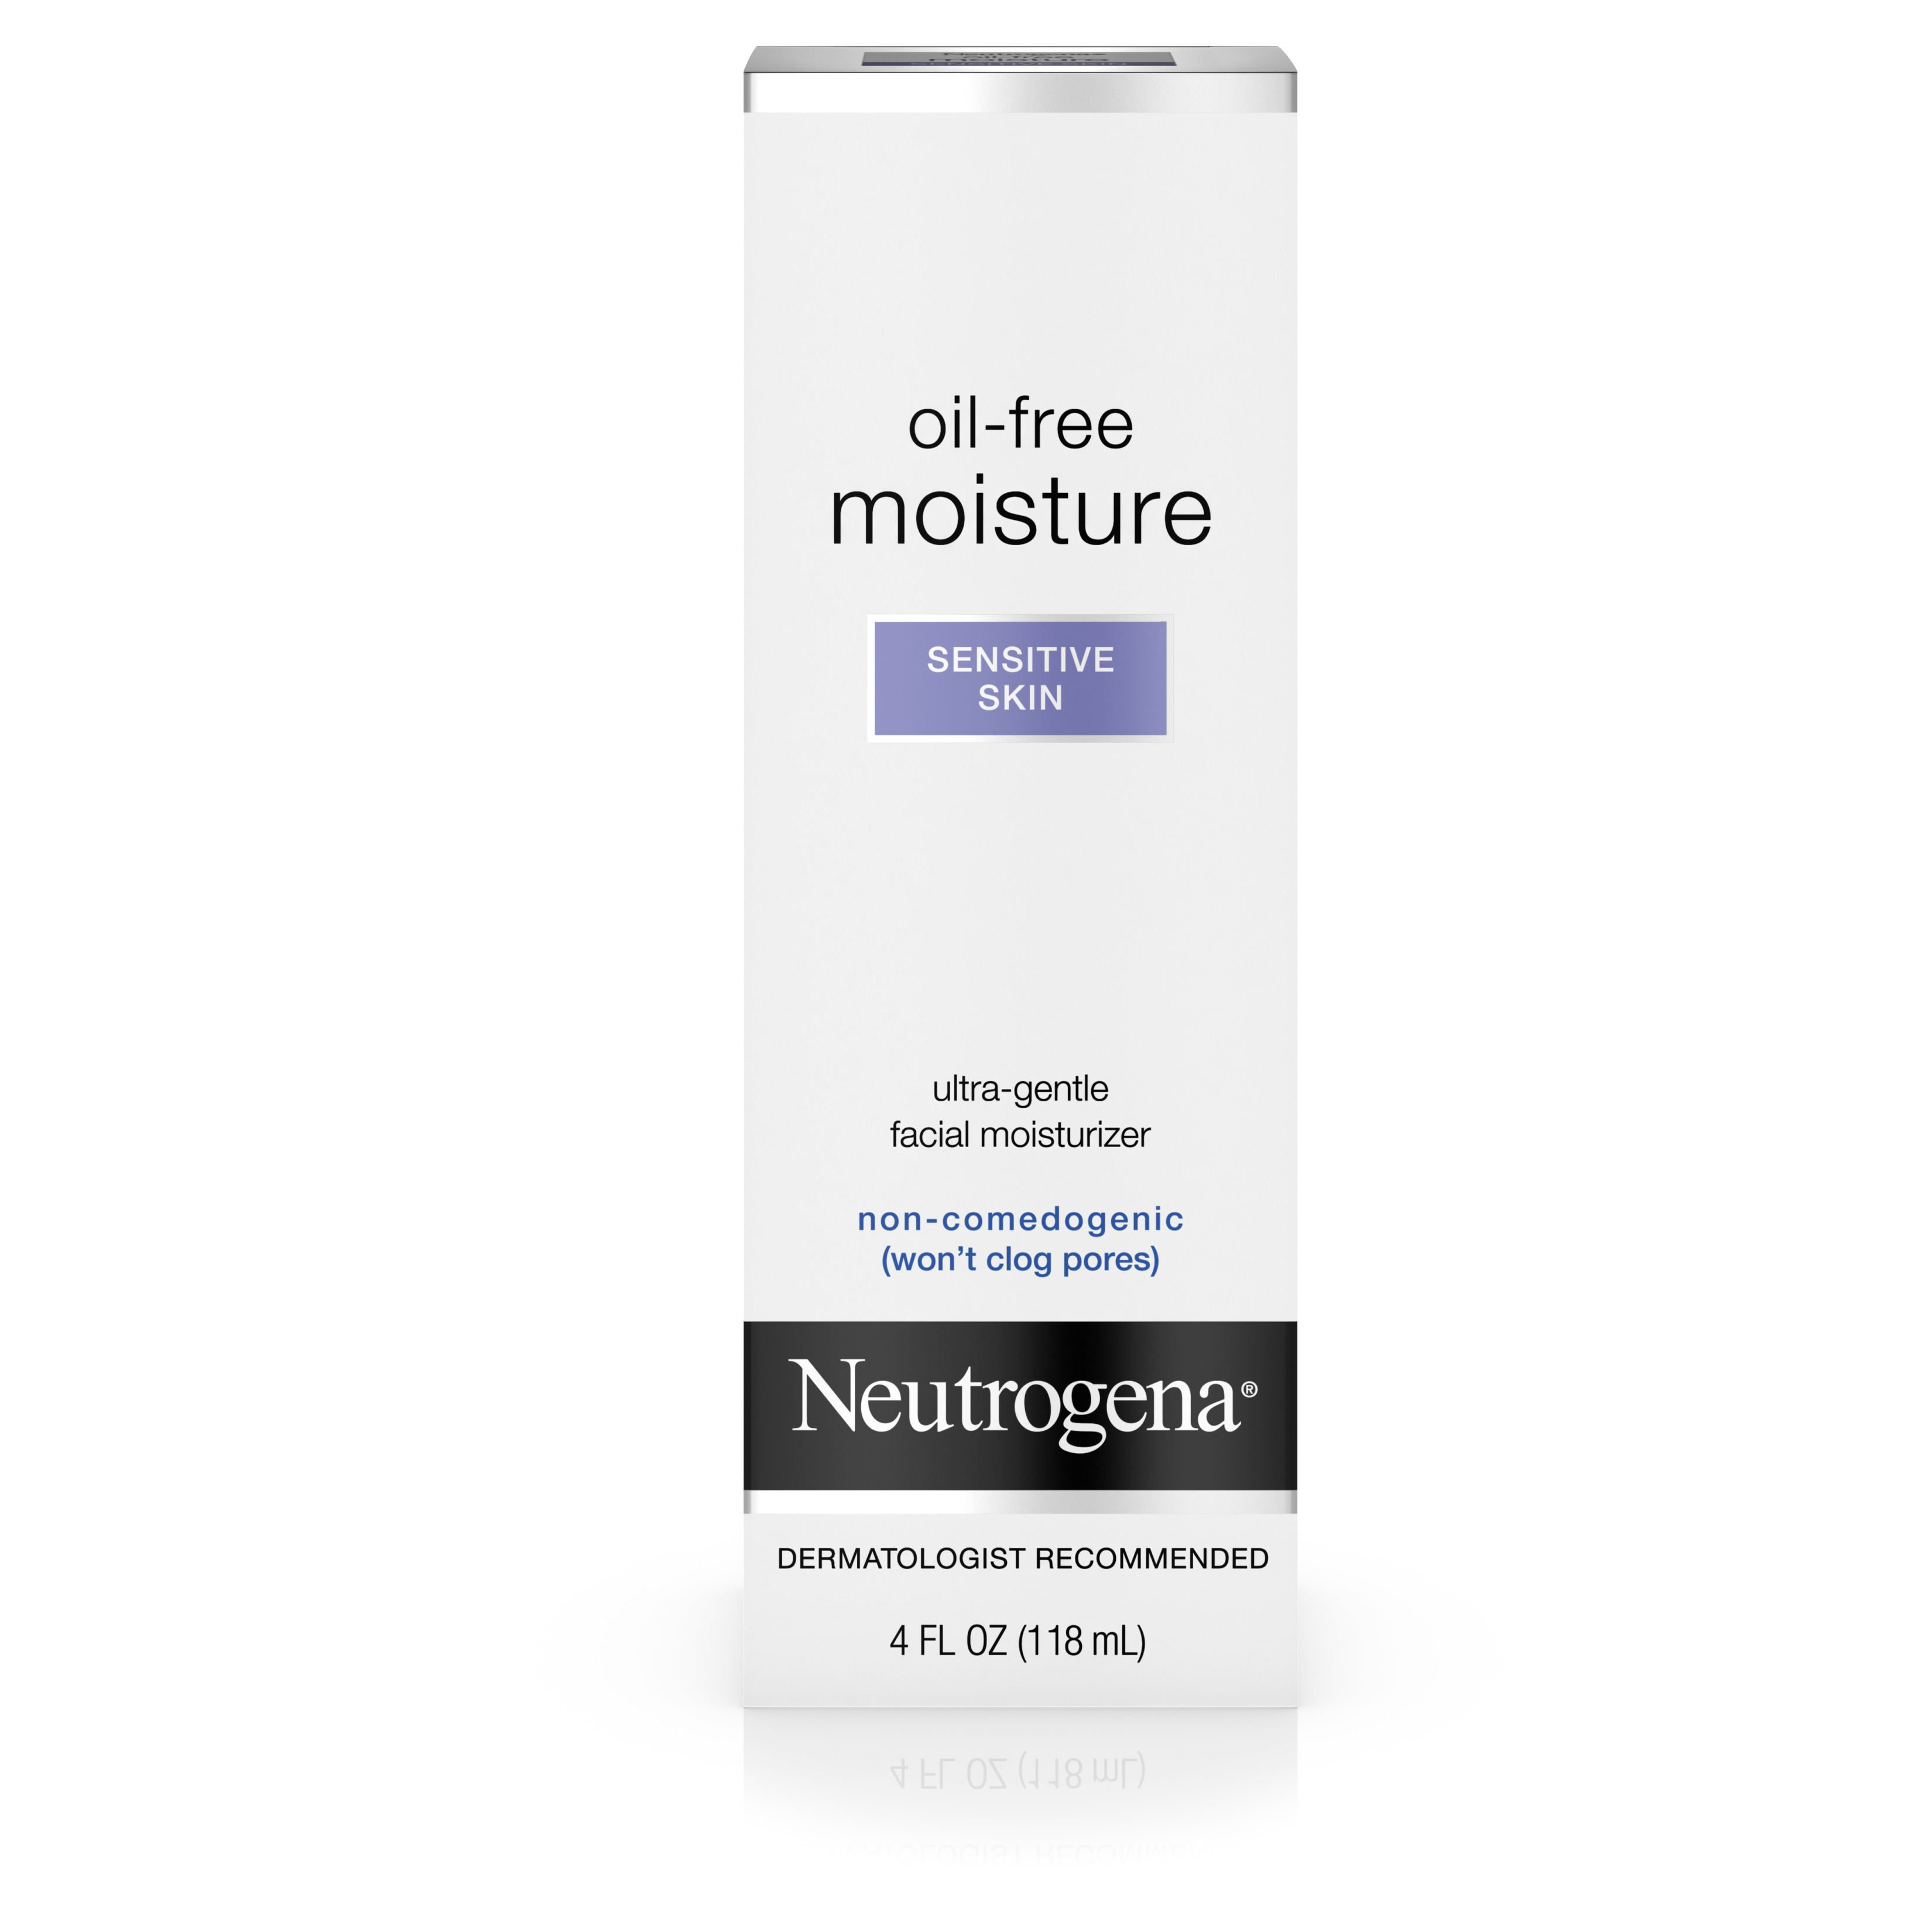 Neutrogena Oil-Free Moisture Sensitive Skin, 4 Fl. Oz. - Walmart.com